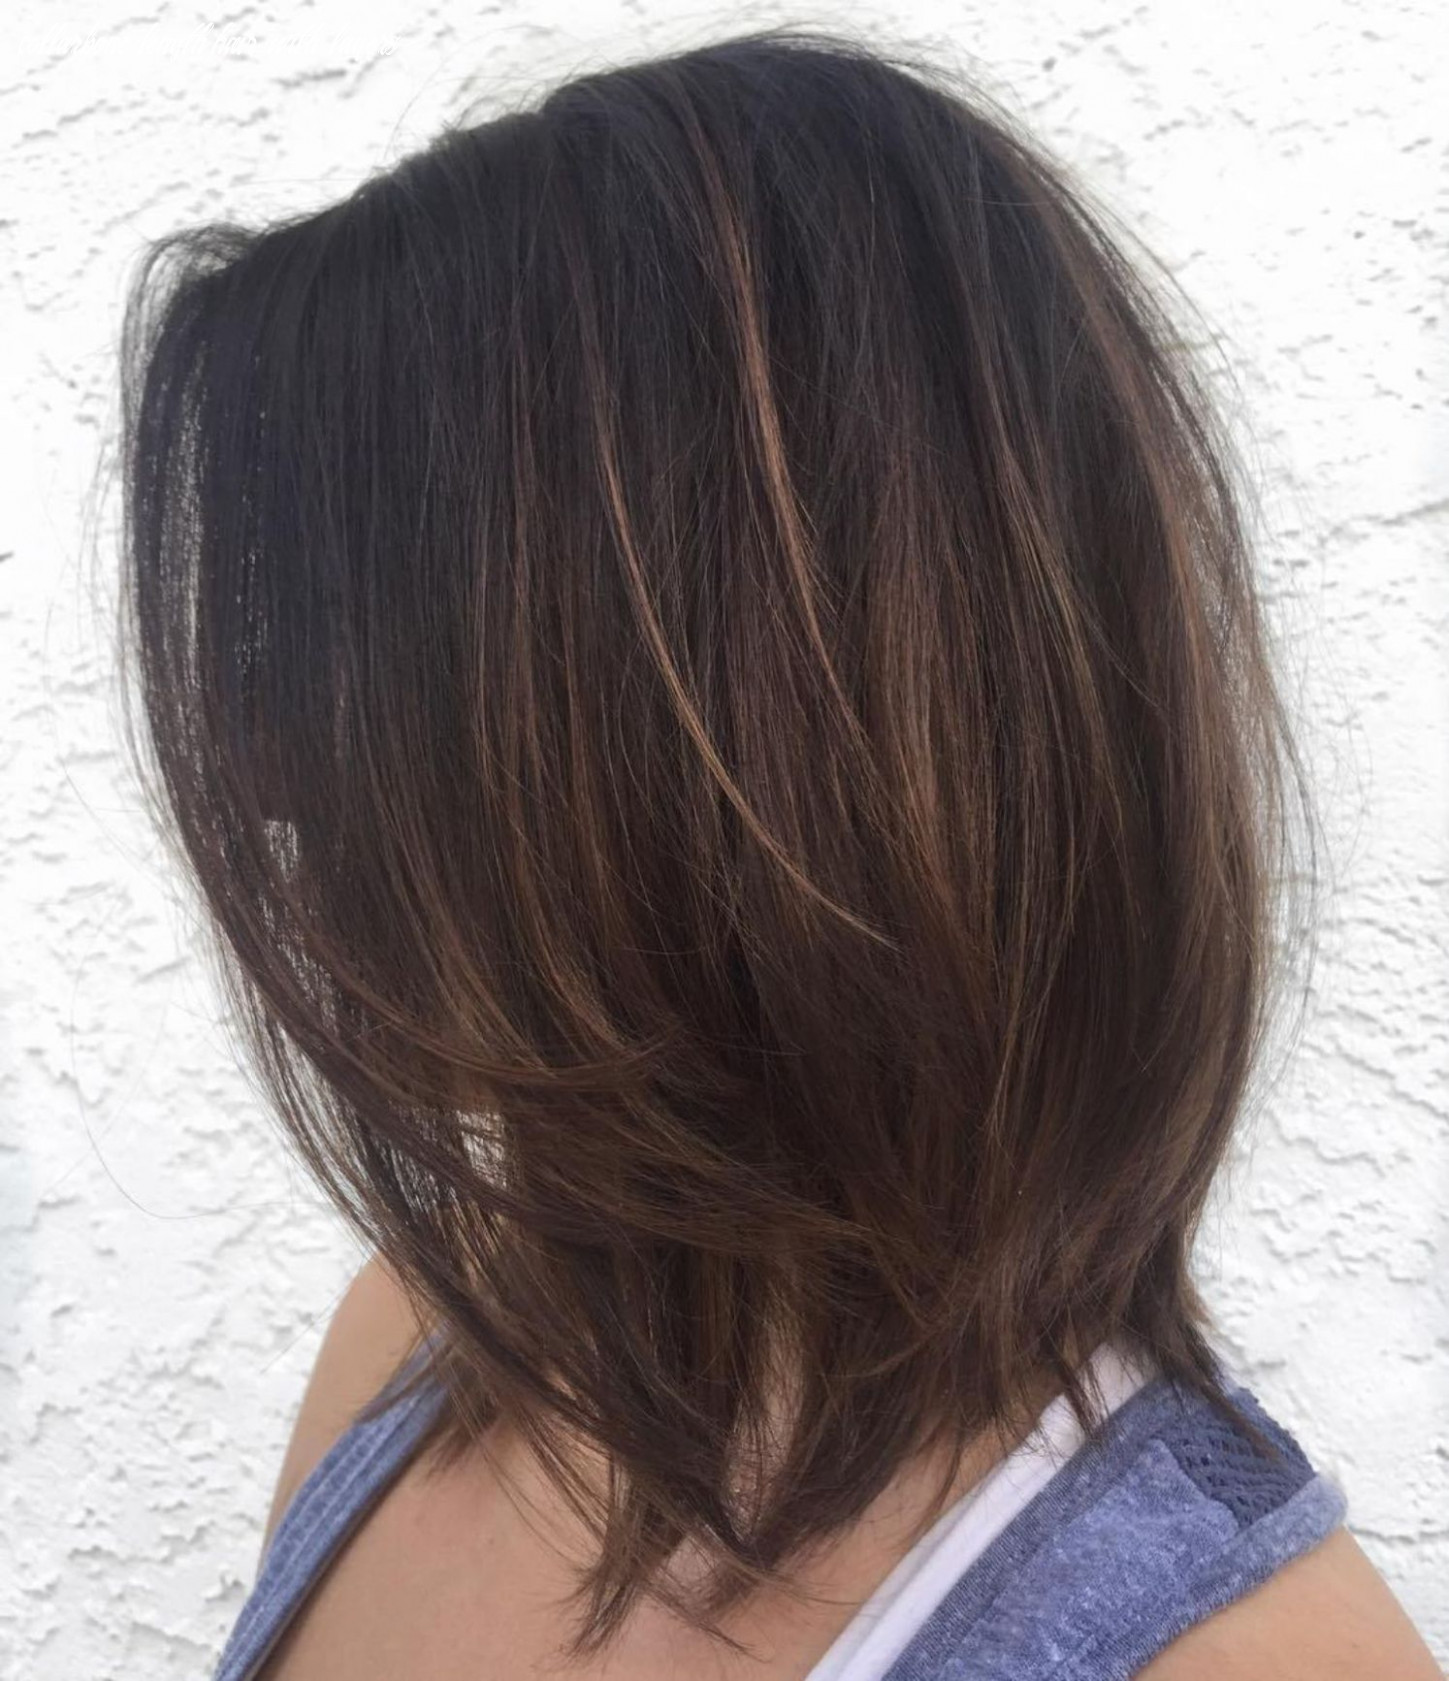 Pin on hair hall of honor collarbone length hair with layers